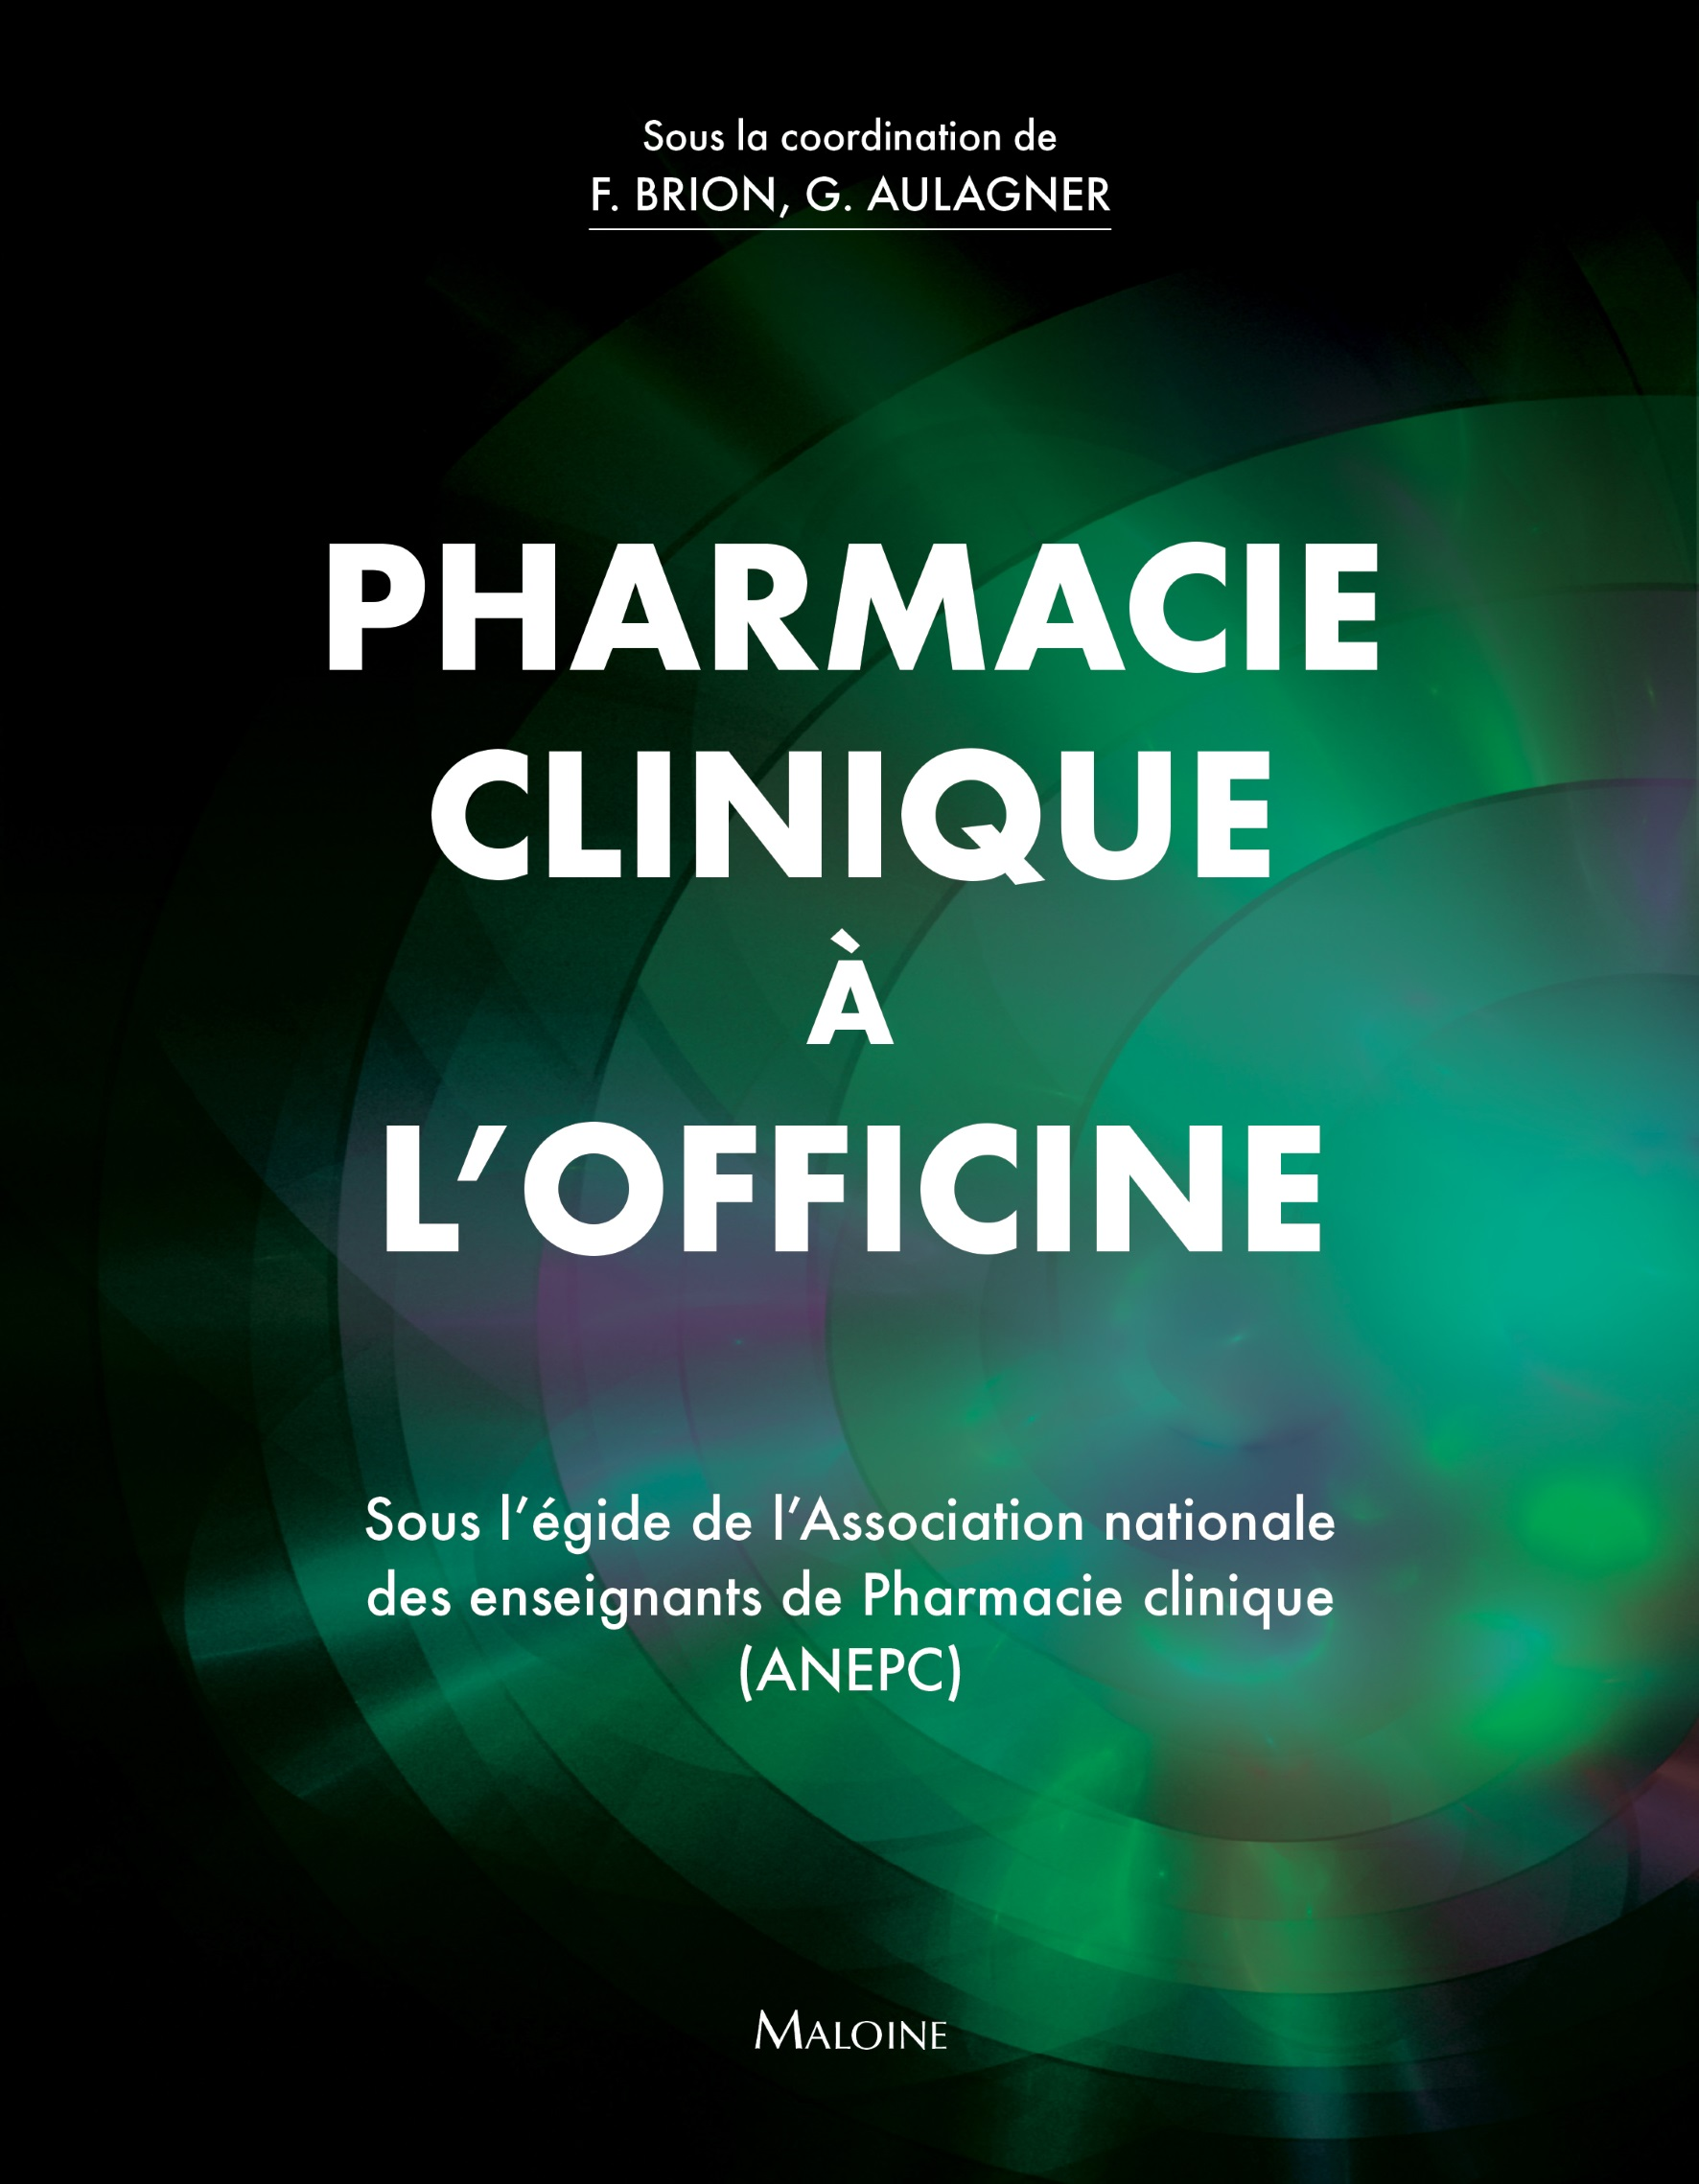 Pharmacie clinique à l'officine